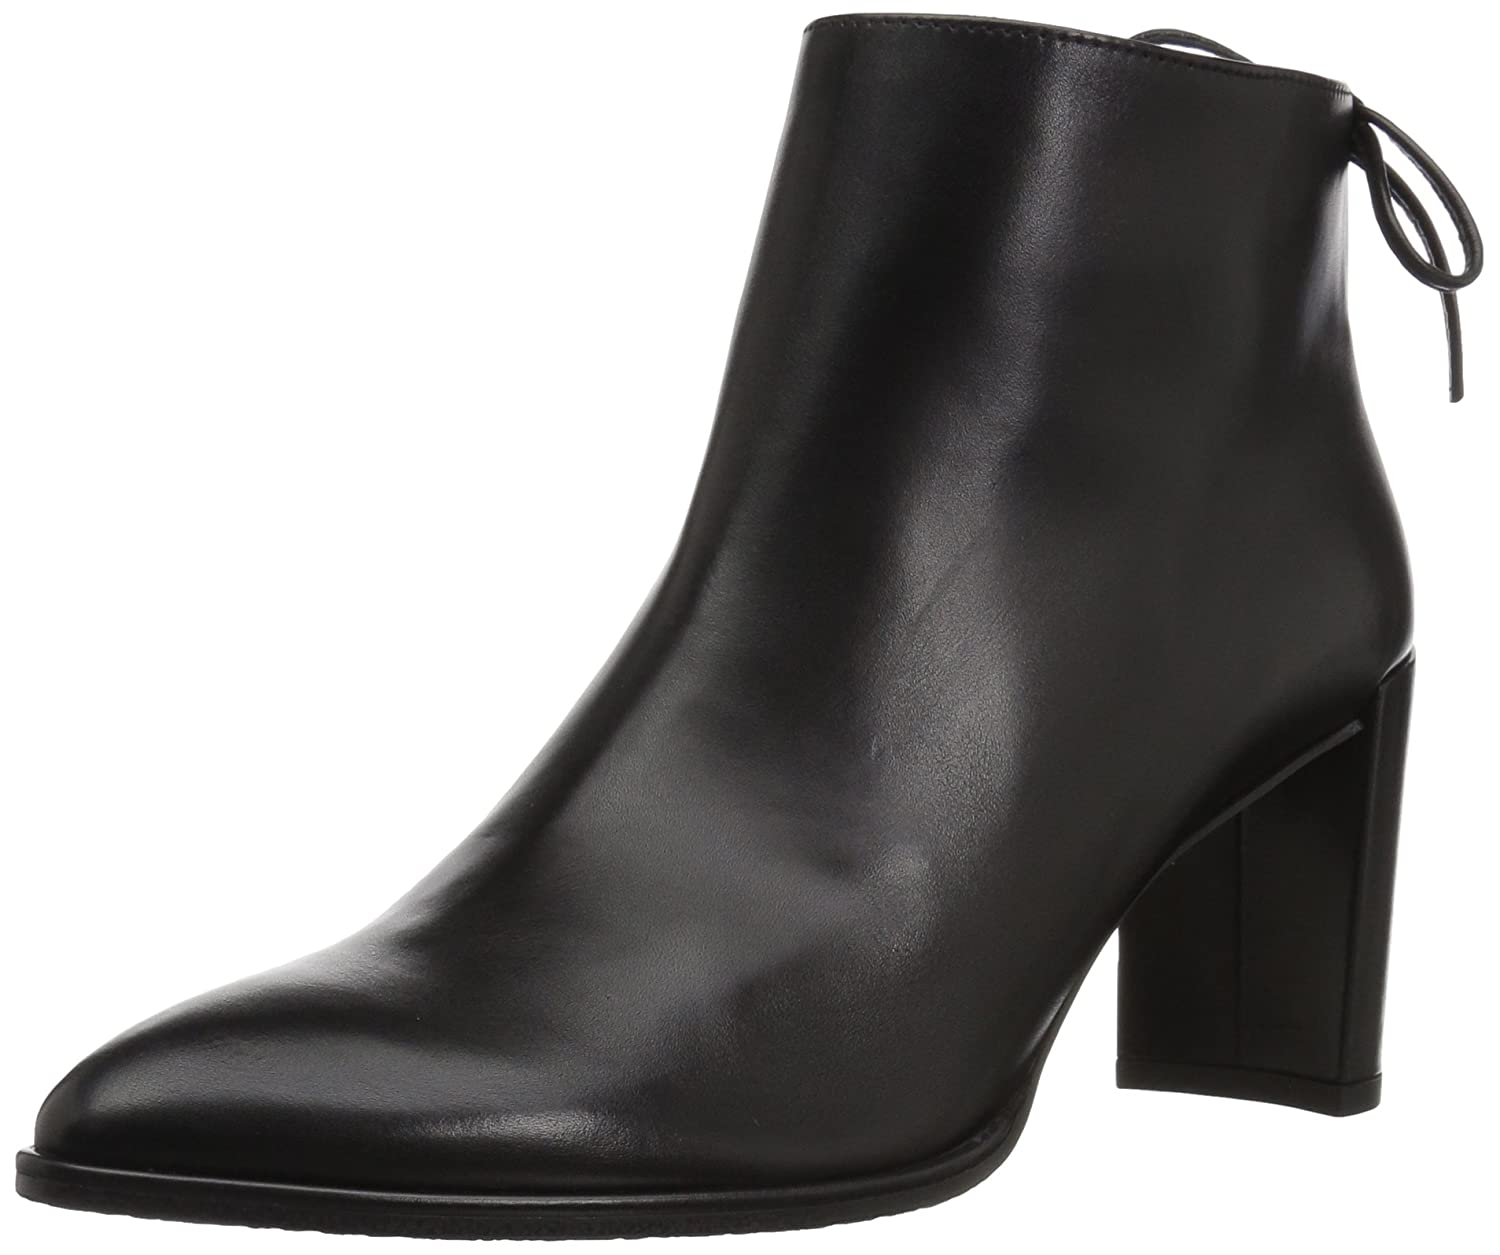 Stuart Weitzman Women's Lofty Ankle Boot B0747XL84G 8 B(M) US|Black Calf